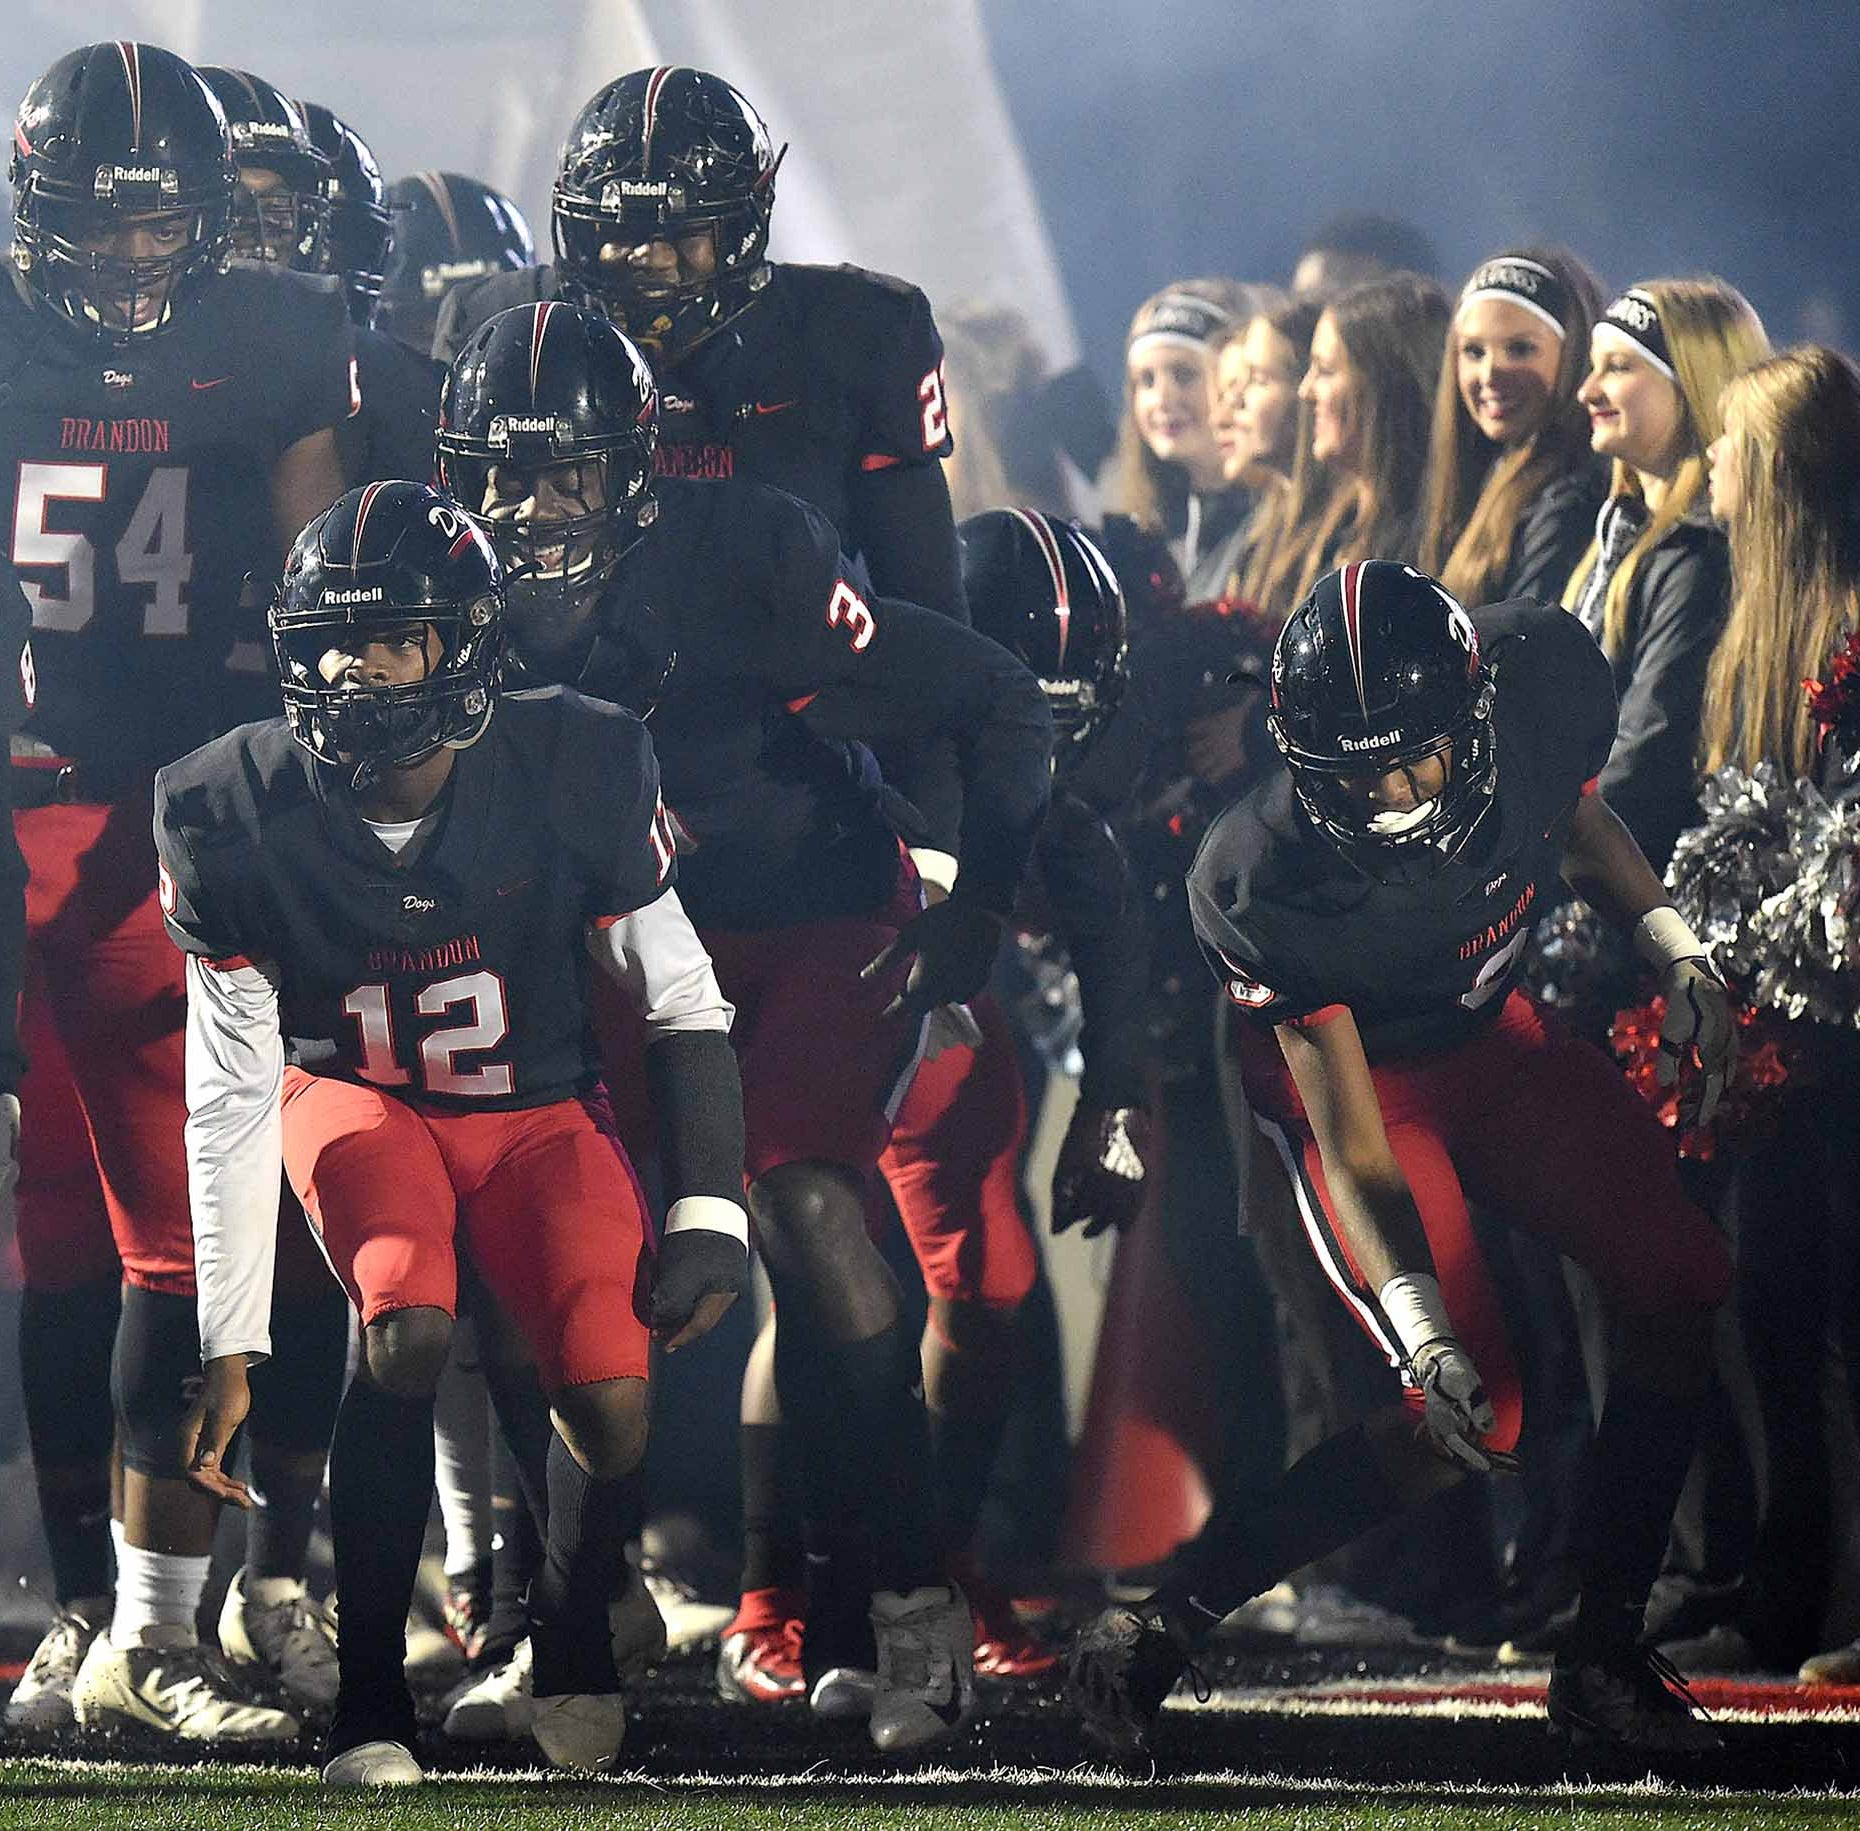 Live updates: #MSPreps high school football playoffs